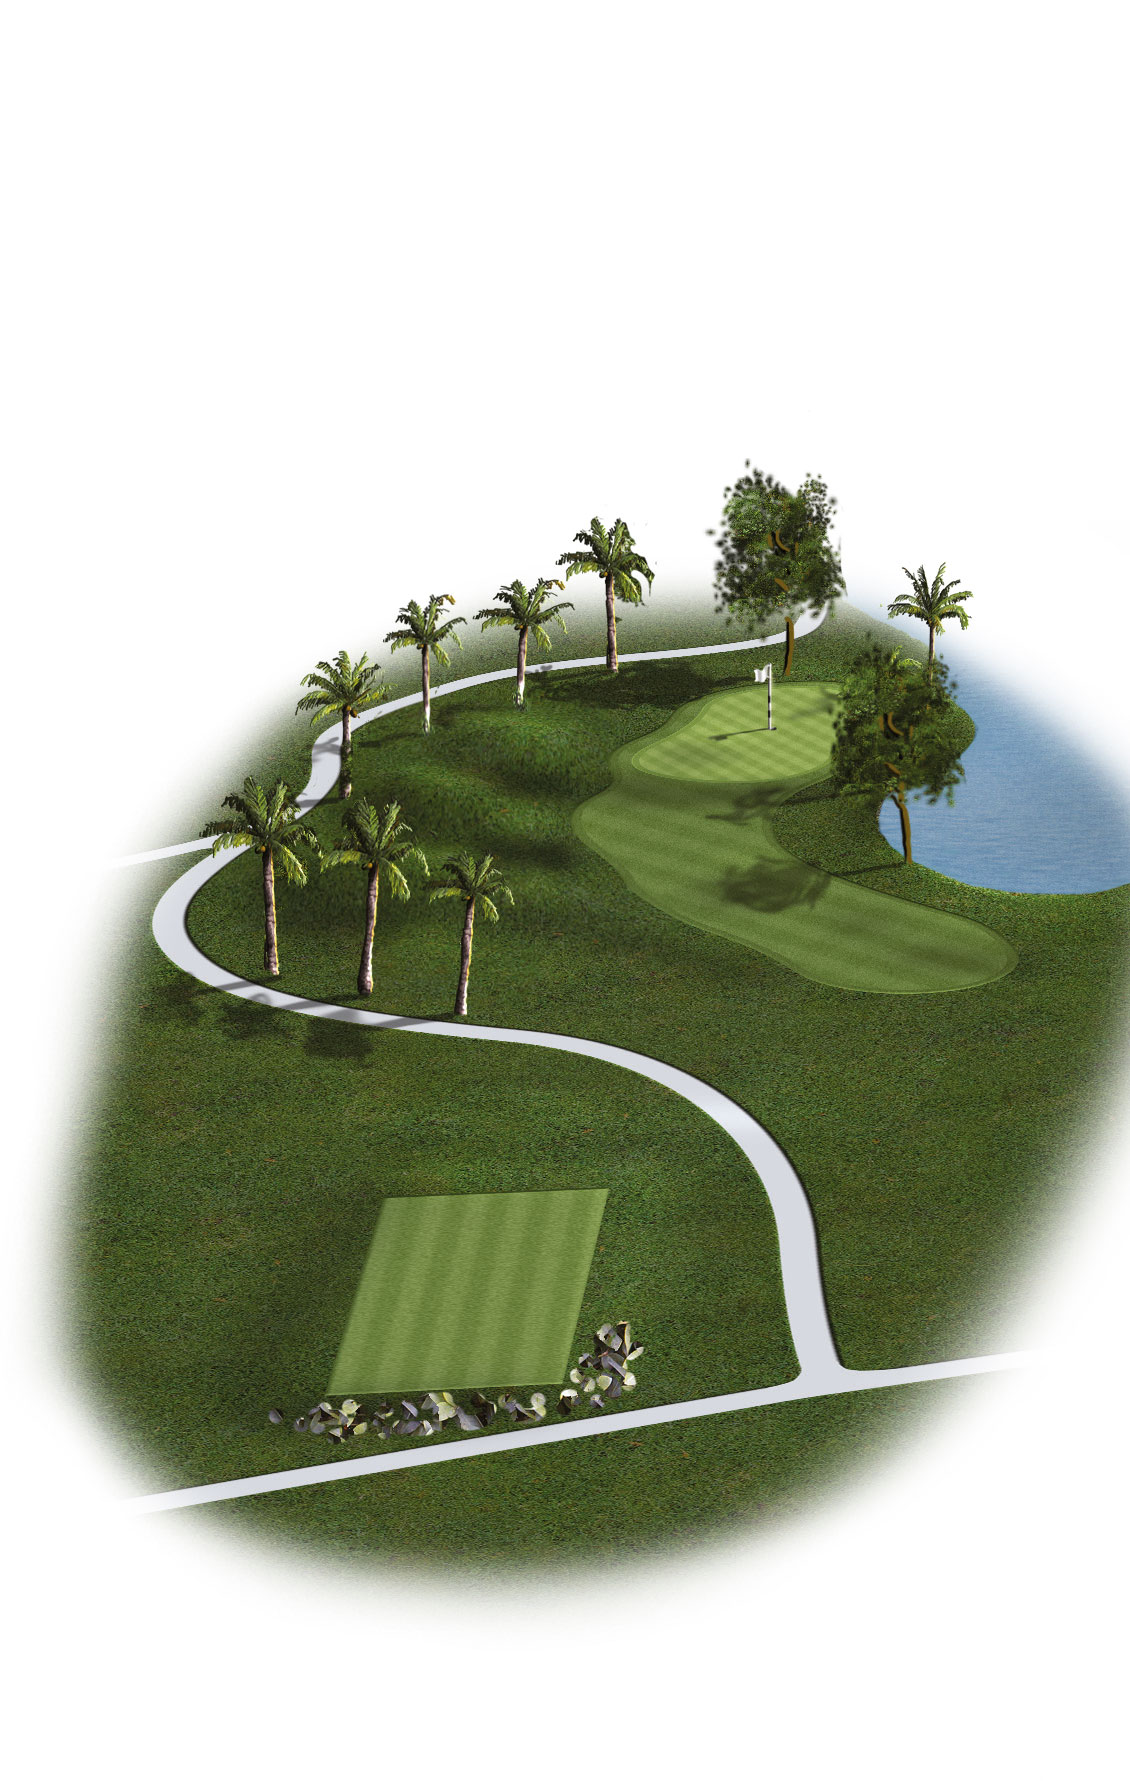 10th Hole - Par 3 (154 meters/168 yards)